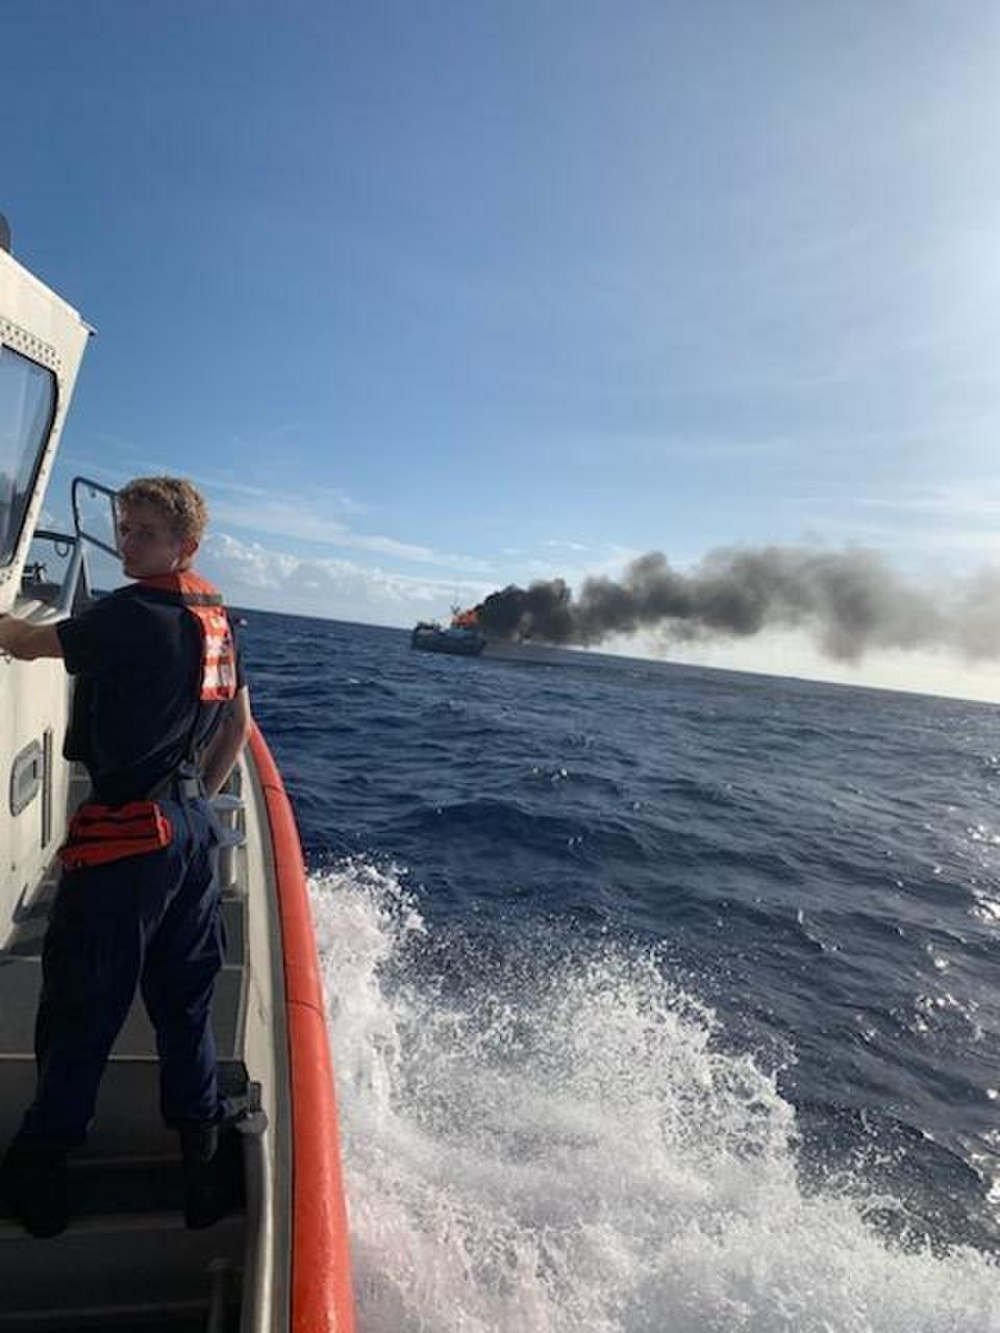 Coast Guard Rescues Fishing Crew from Burning Boat Off Hawaii